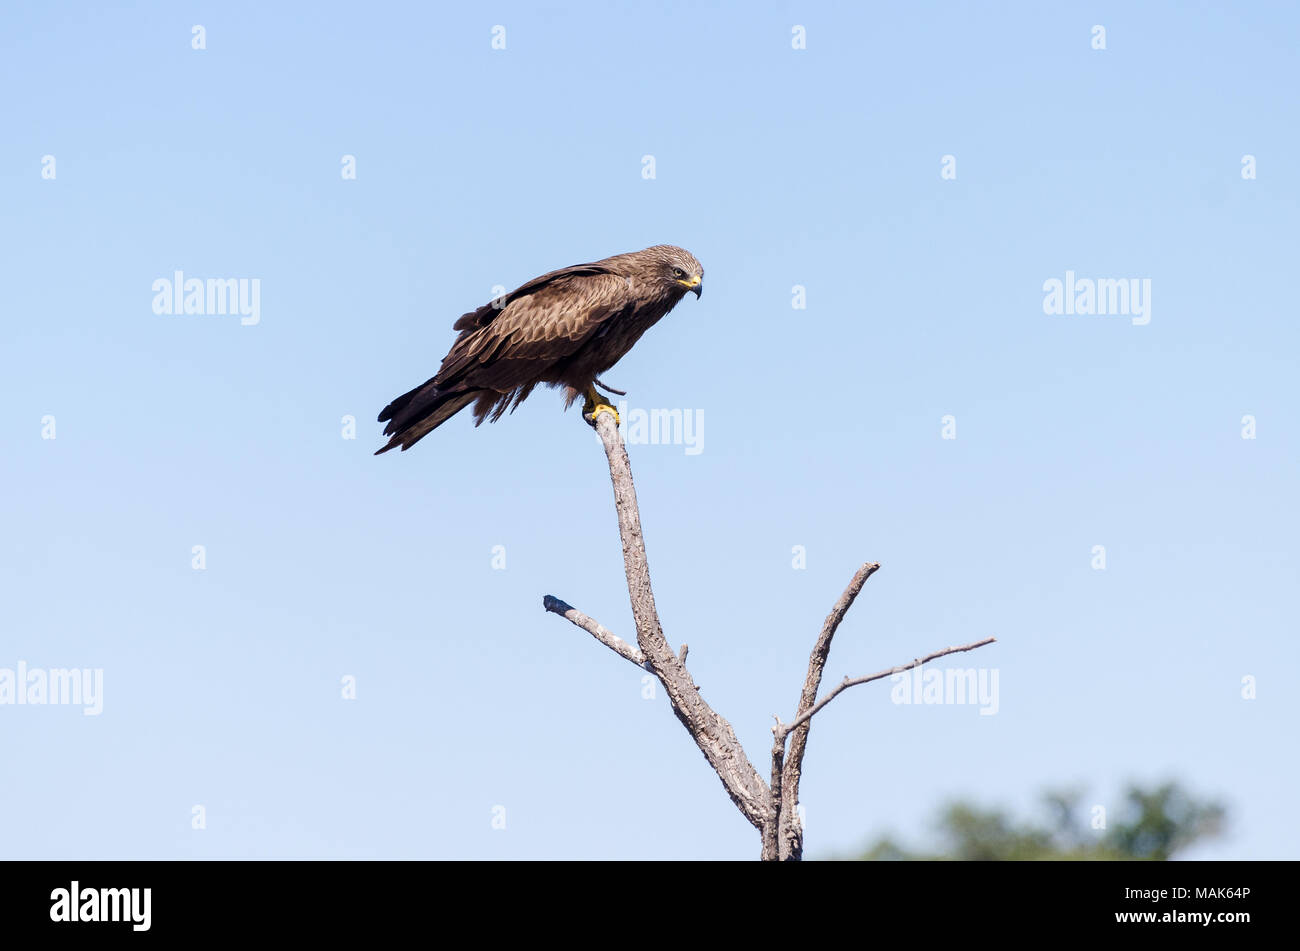 Bonelli's Eagle perched on a branch - Stock Image